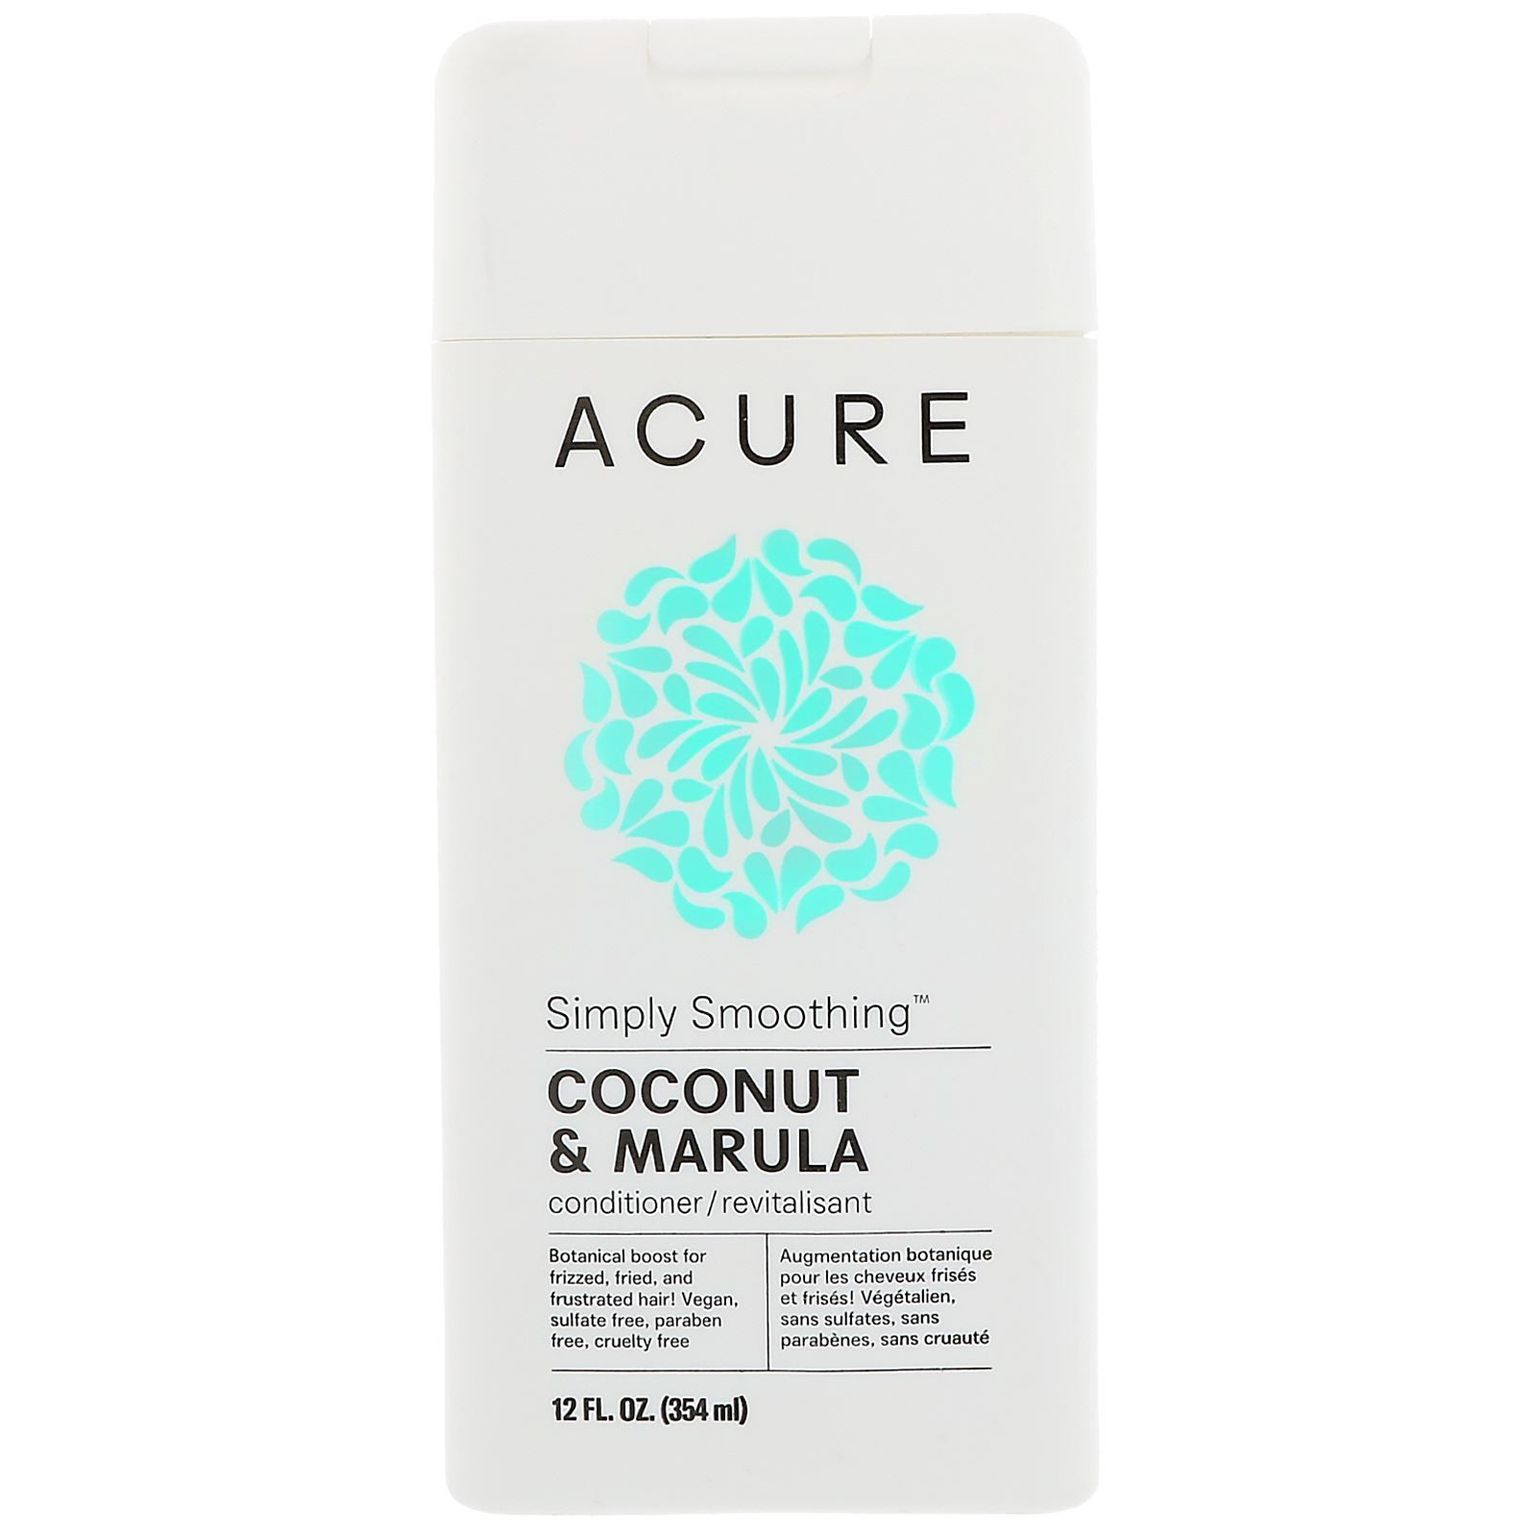 Acure Organics Simply Smoothing Coconut & Marula